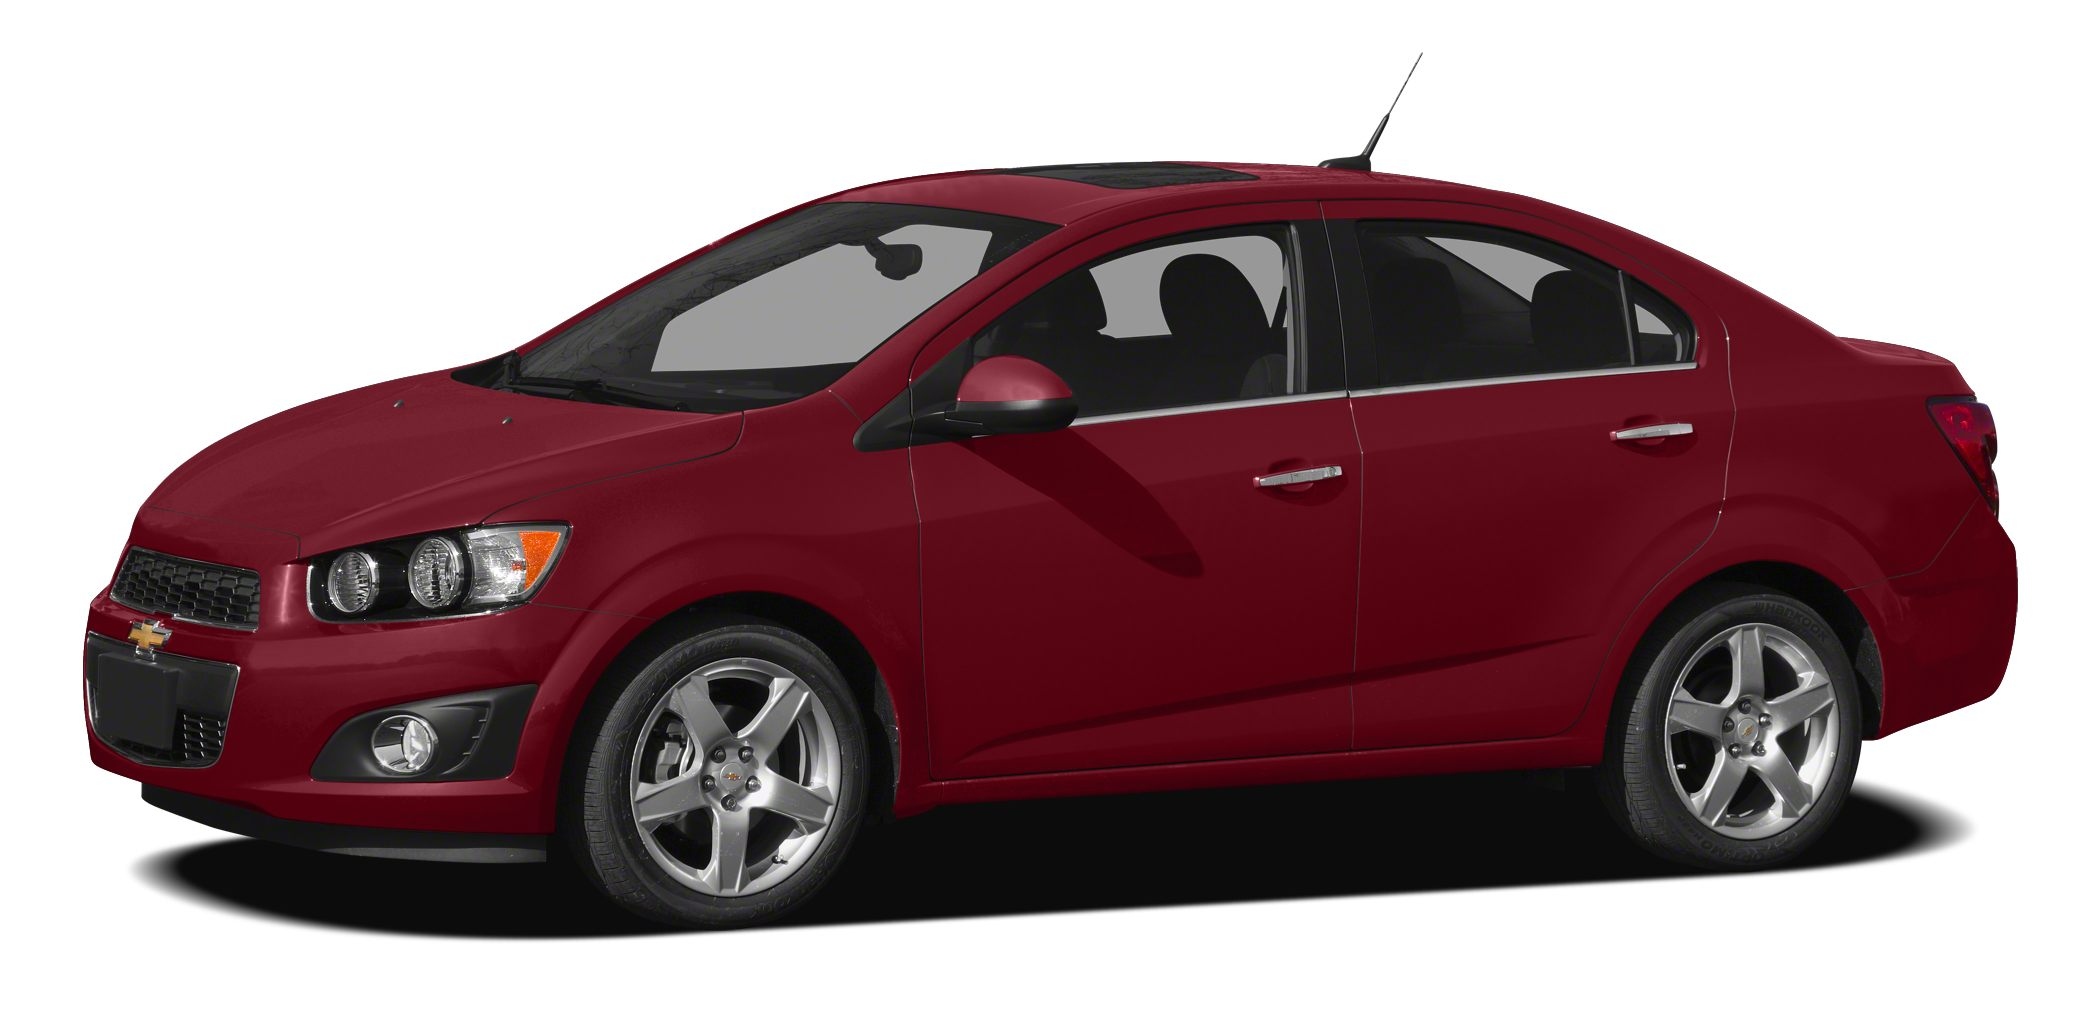 2012 Chevrolet Sonic LT DISCLAIMER We are excited to offer this vehicle to you but it is currently